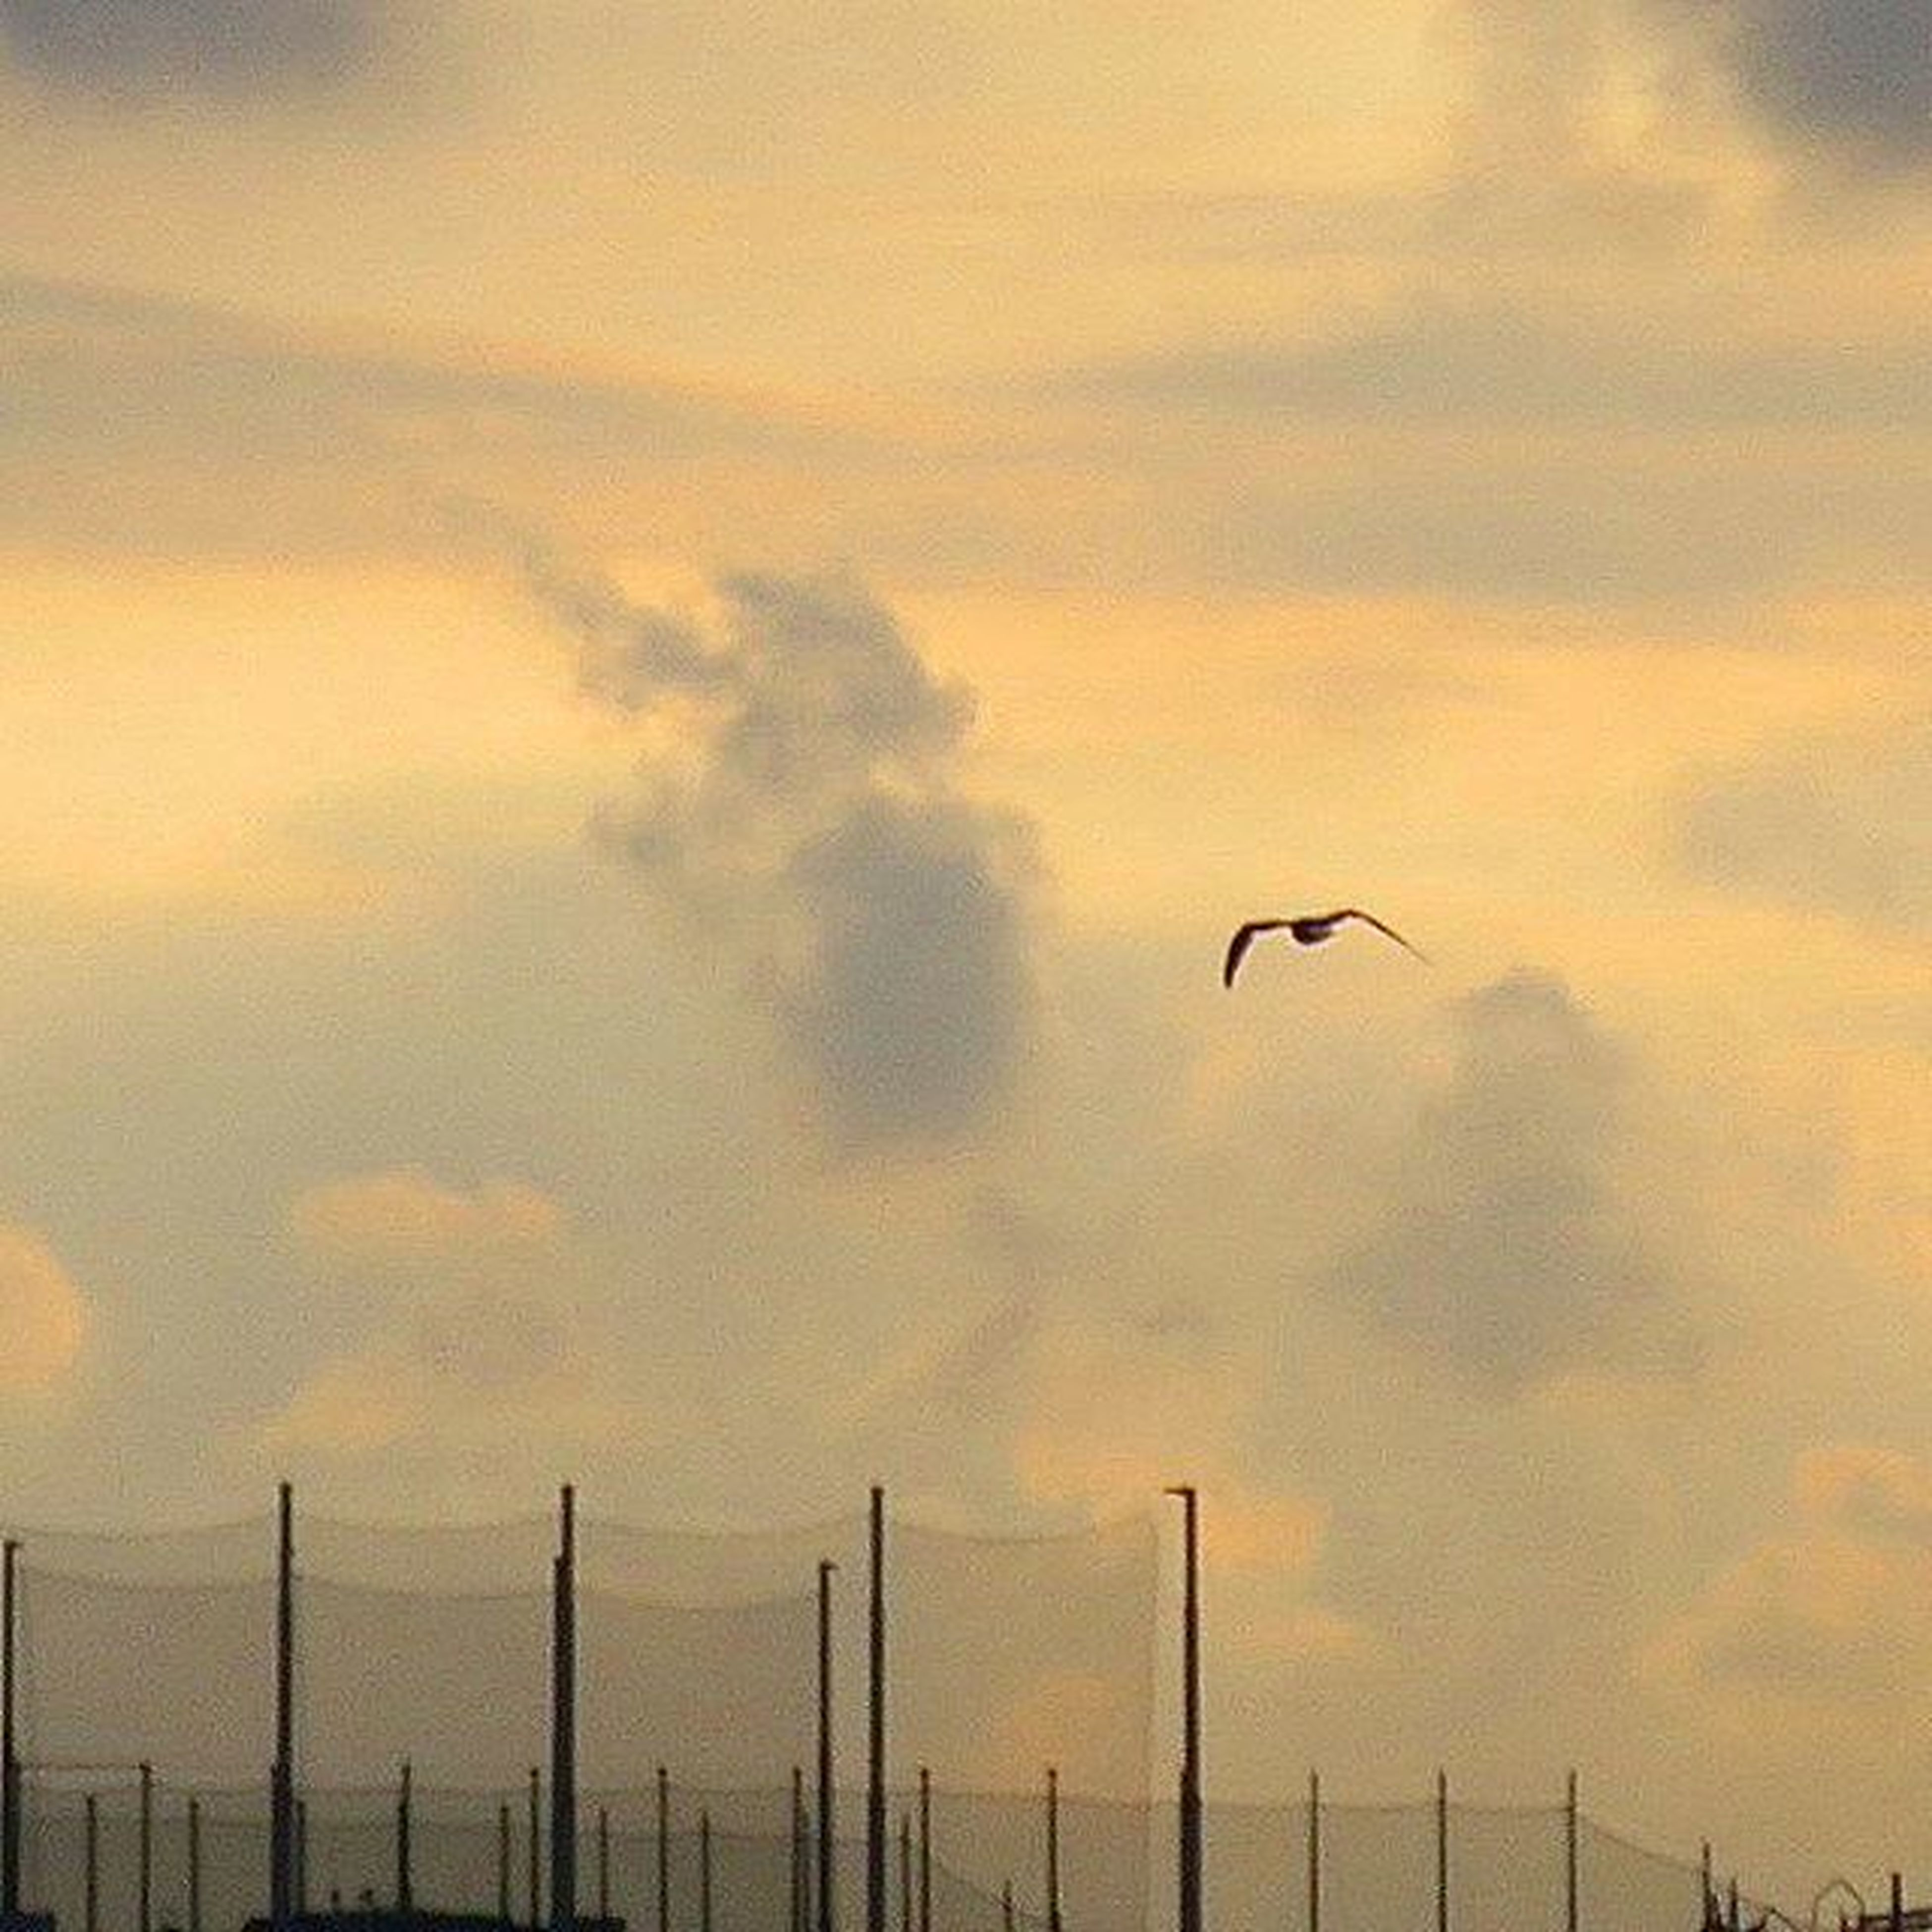 bird, sky, animal themes, cloud - sky, flying, animals in the wild, low angle view, sunset, cloudy, wildlife, one animal, silhouette, nature, cloud, perching, mid-air, beauty in nature, scenics, outdoors, tranquility